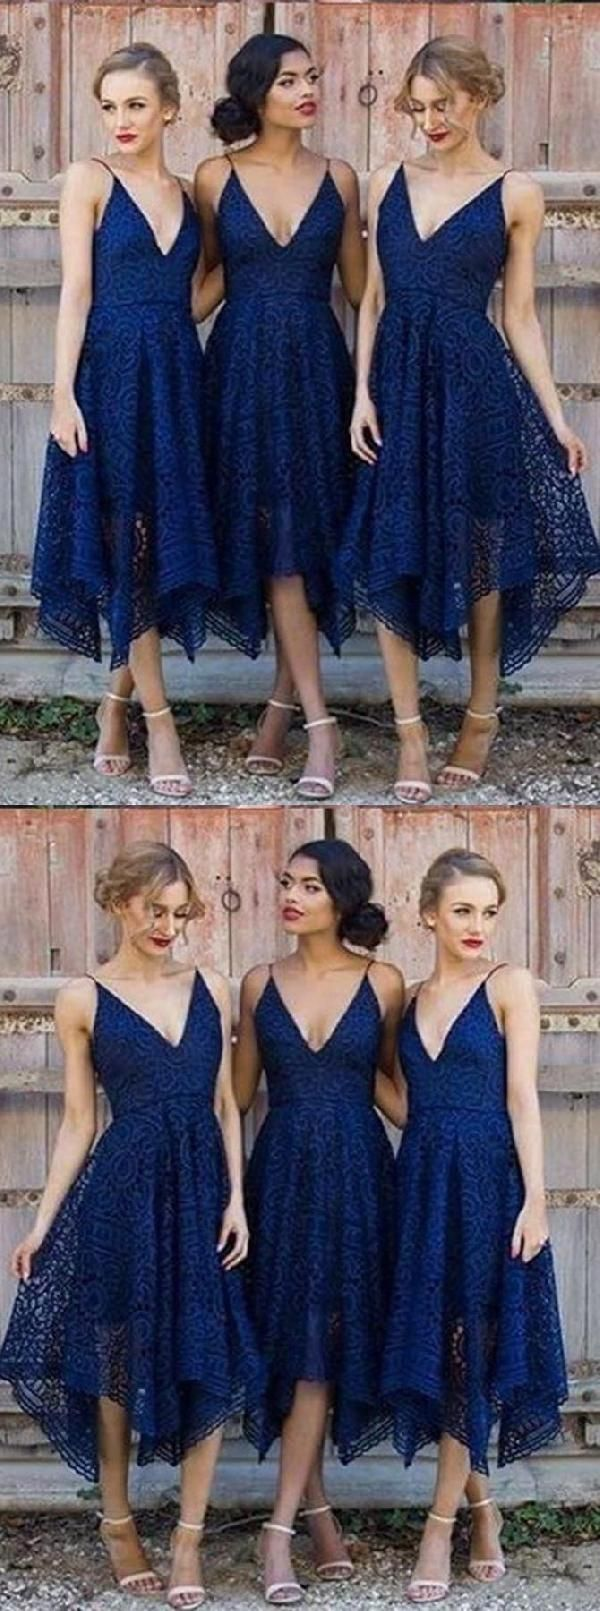 Customized nice vneck homecoming dresses blue homecoming dresses